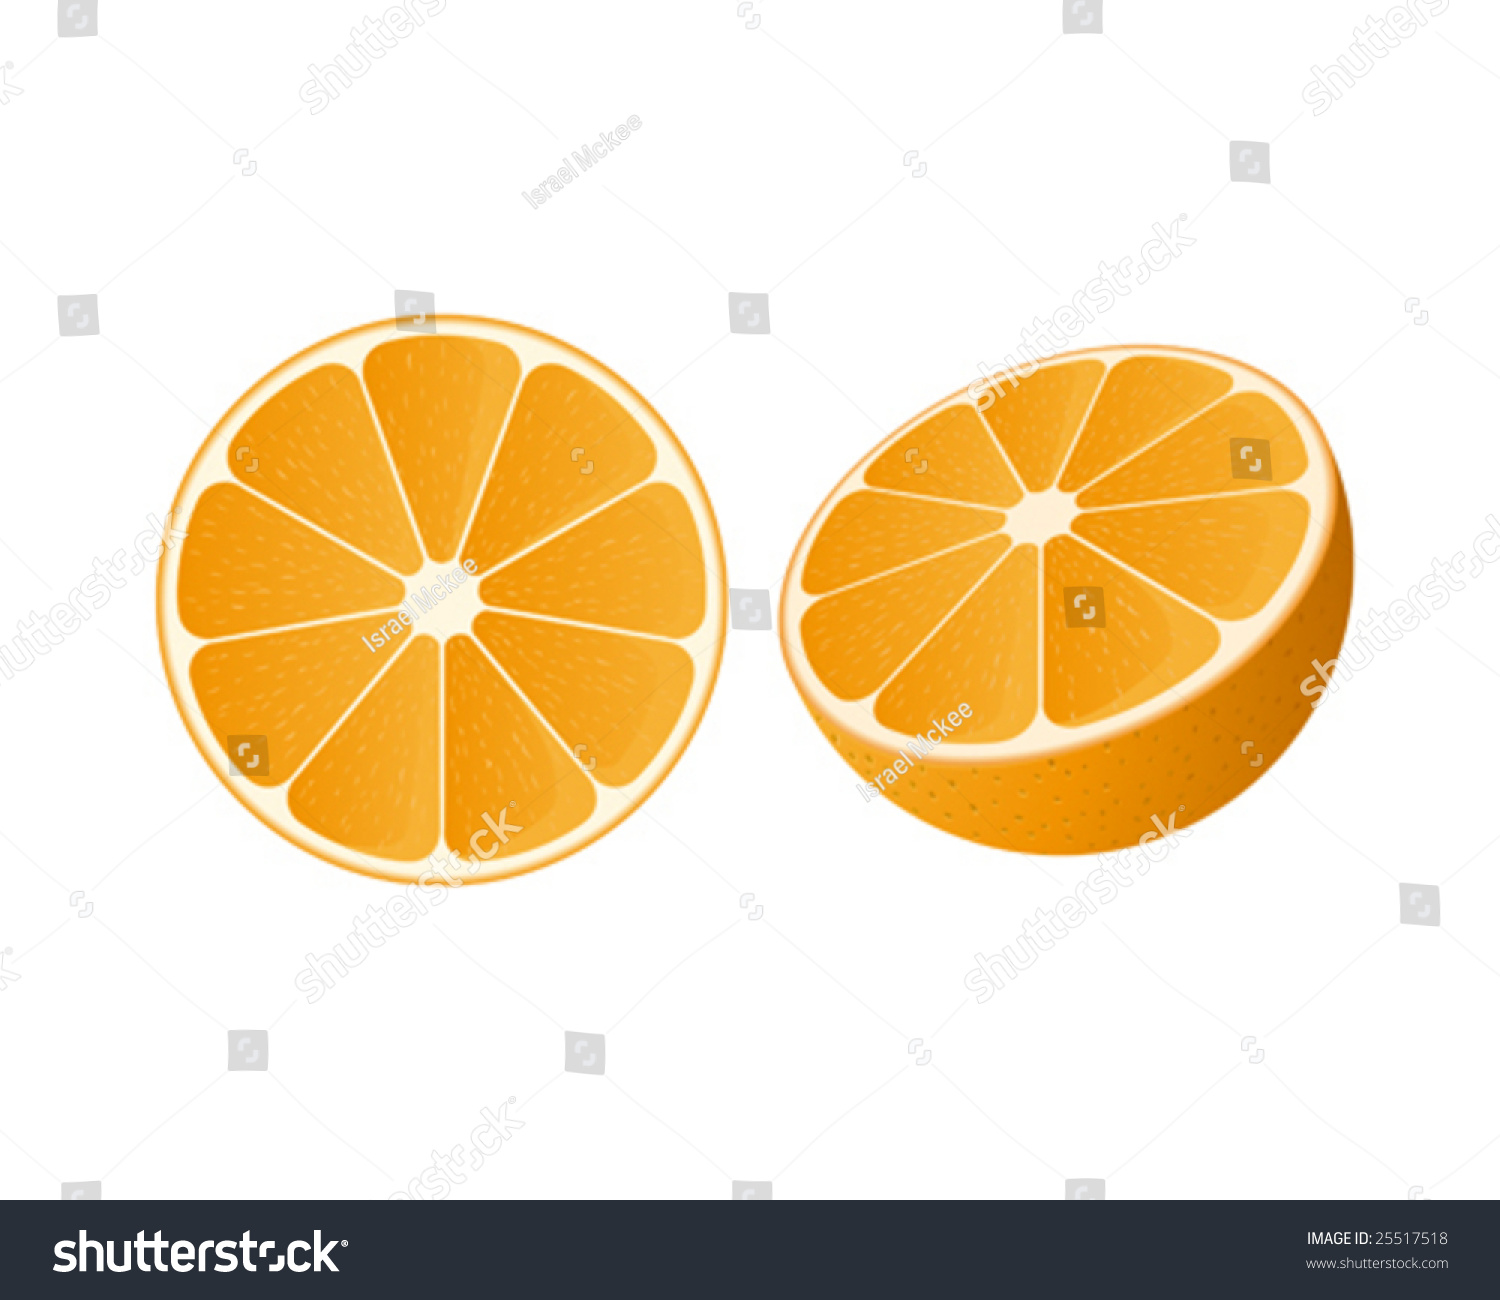 Vector Of A Slice Of Orange And A Half Orange - 25517518 ...